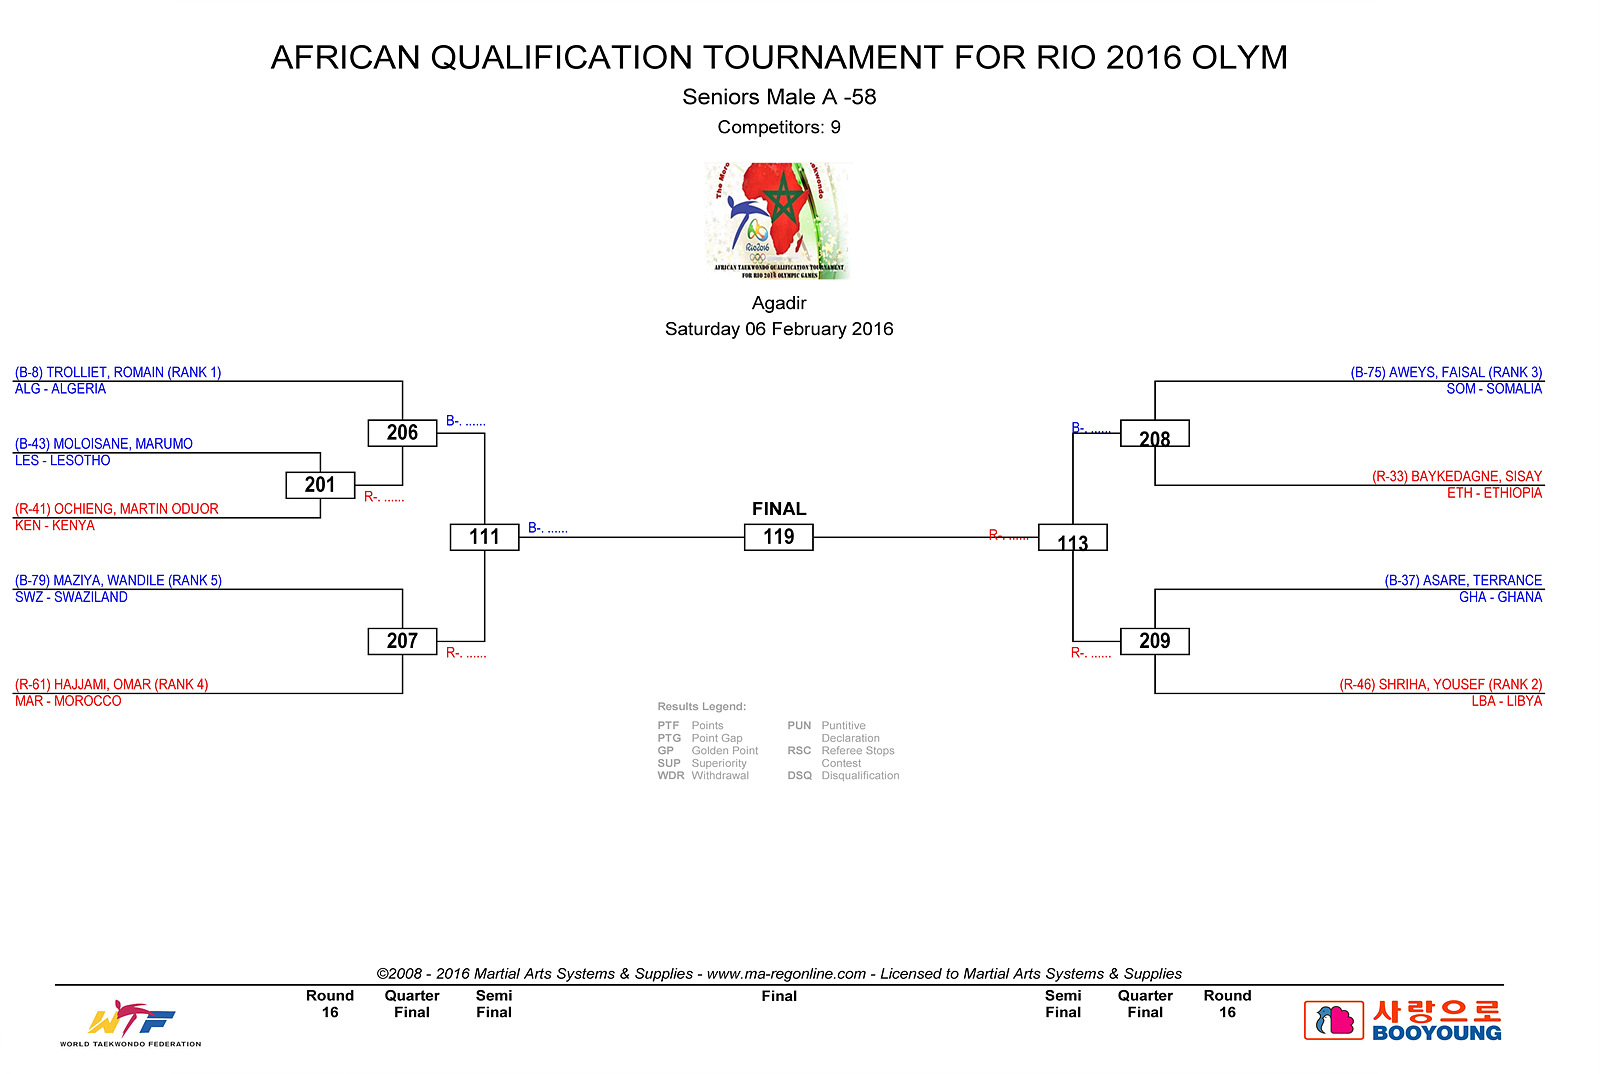 DRAW DAY 1 - AFRICAN_QUALIFICATION_3